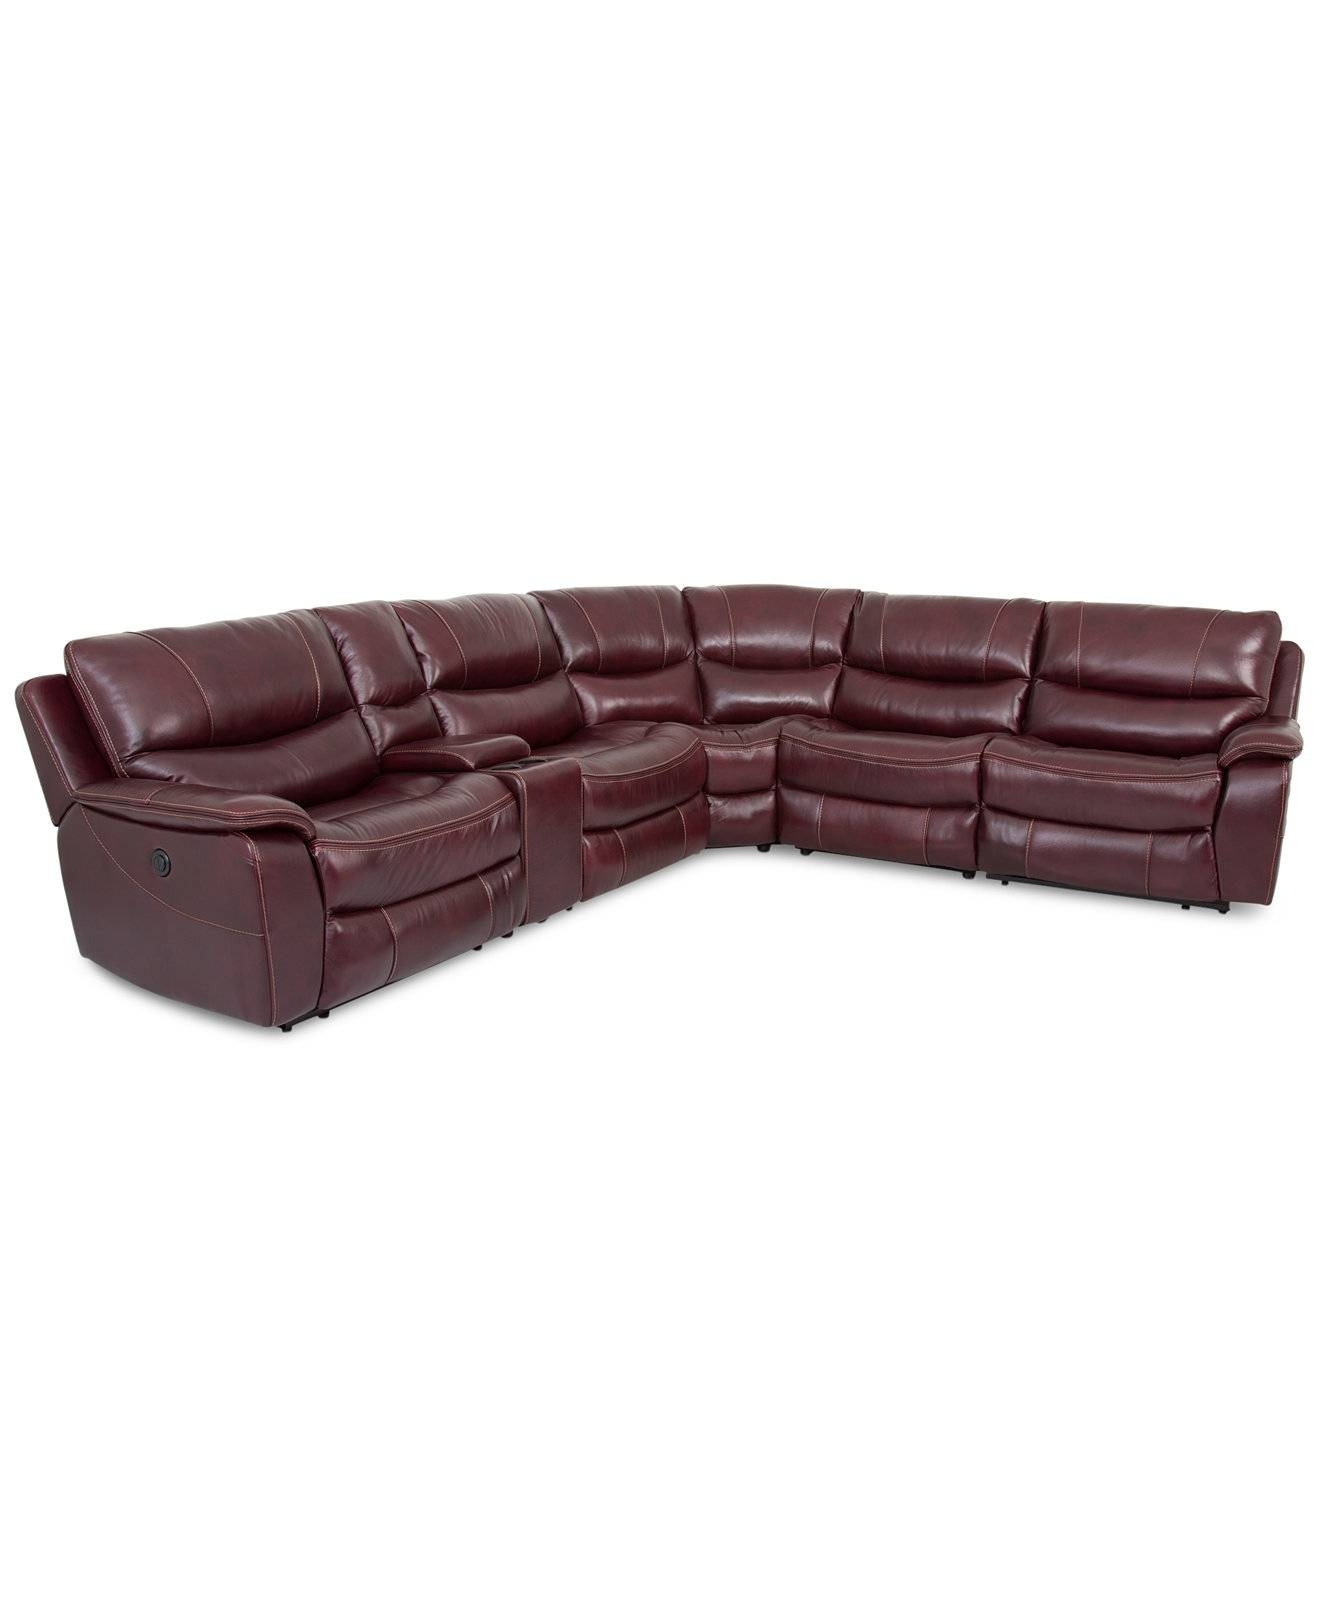 Sofas Center : Impressive Macys Leather Sofa Image Ideas Sofas For with regard to Macys Leather Sofas Sectionals (Image 12 of 25)